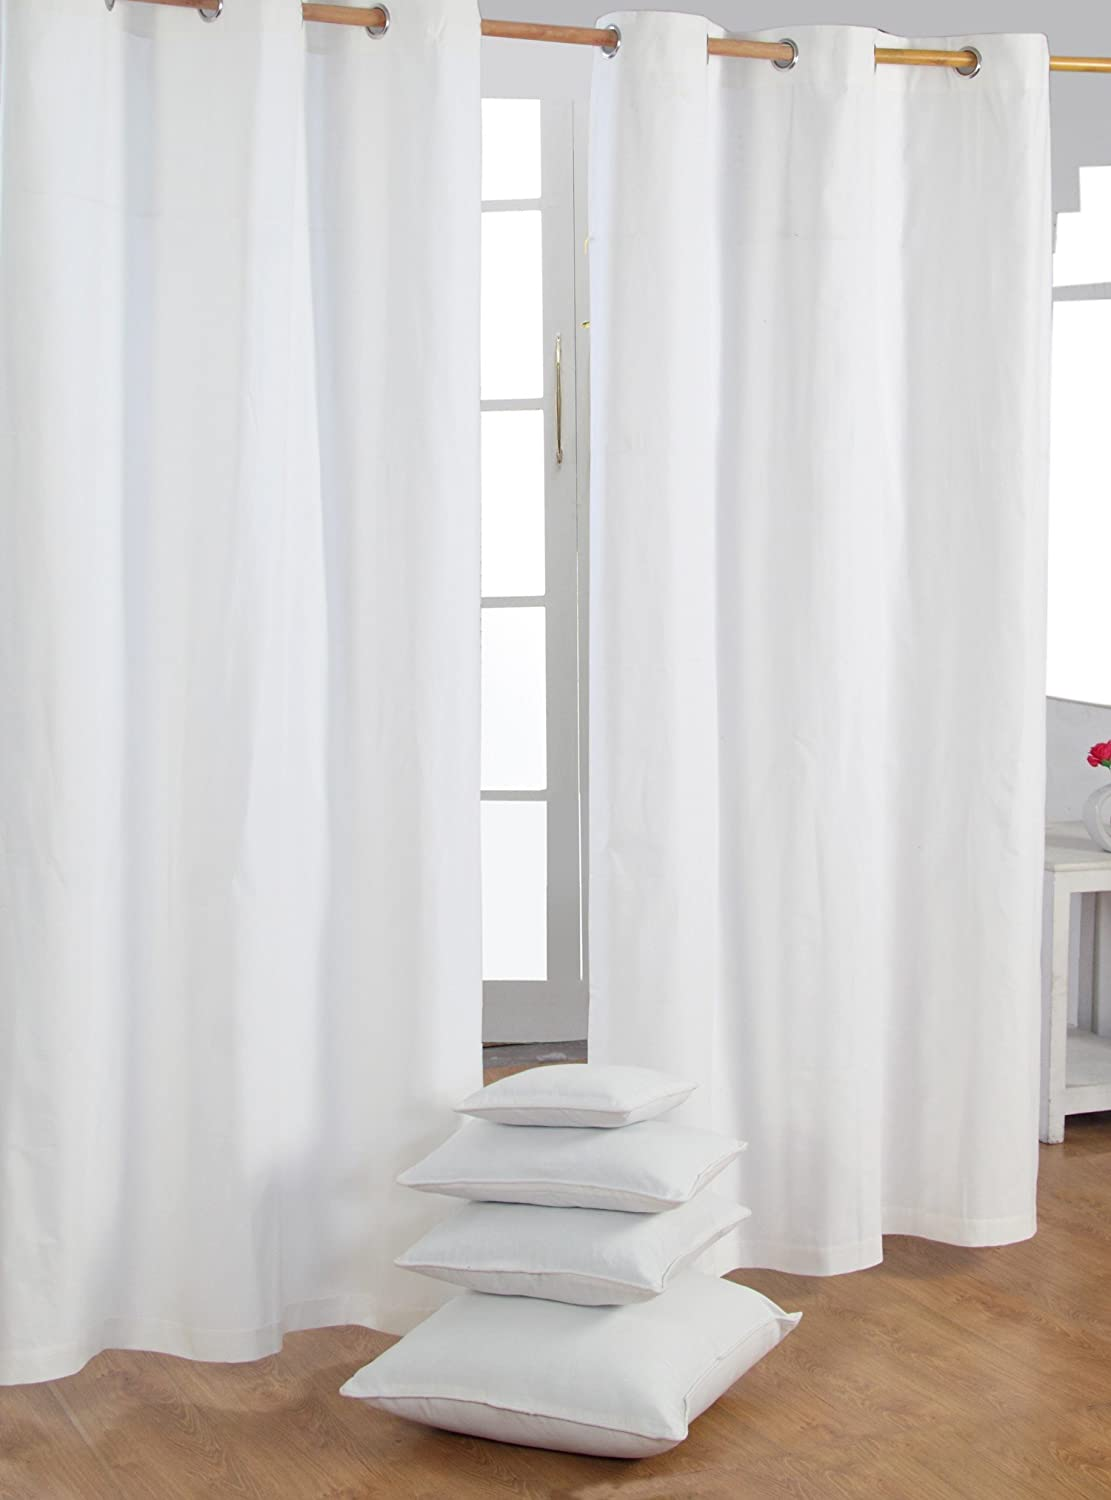 Homescapes White Eyelet Curtain Pair 117cm (46\